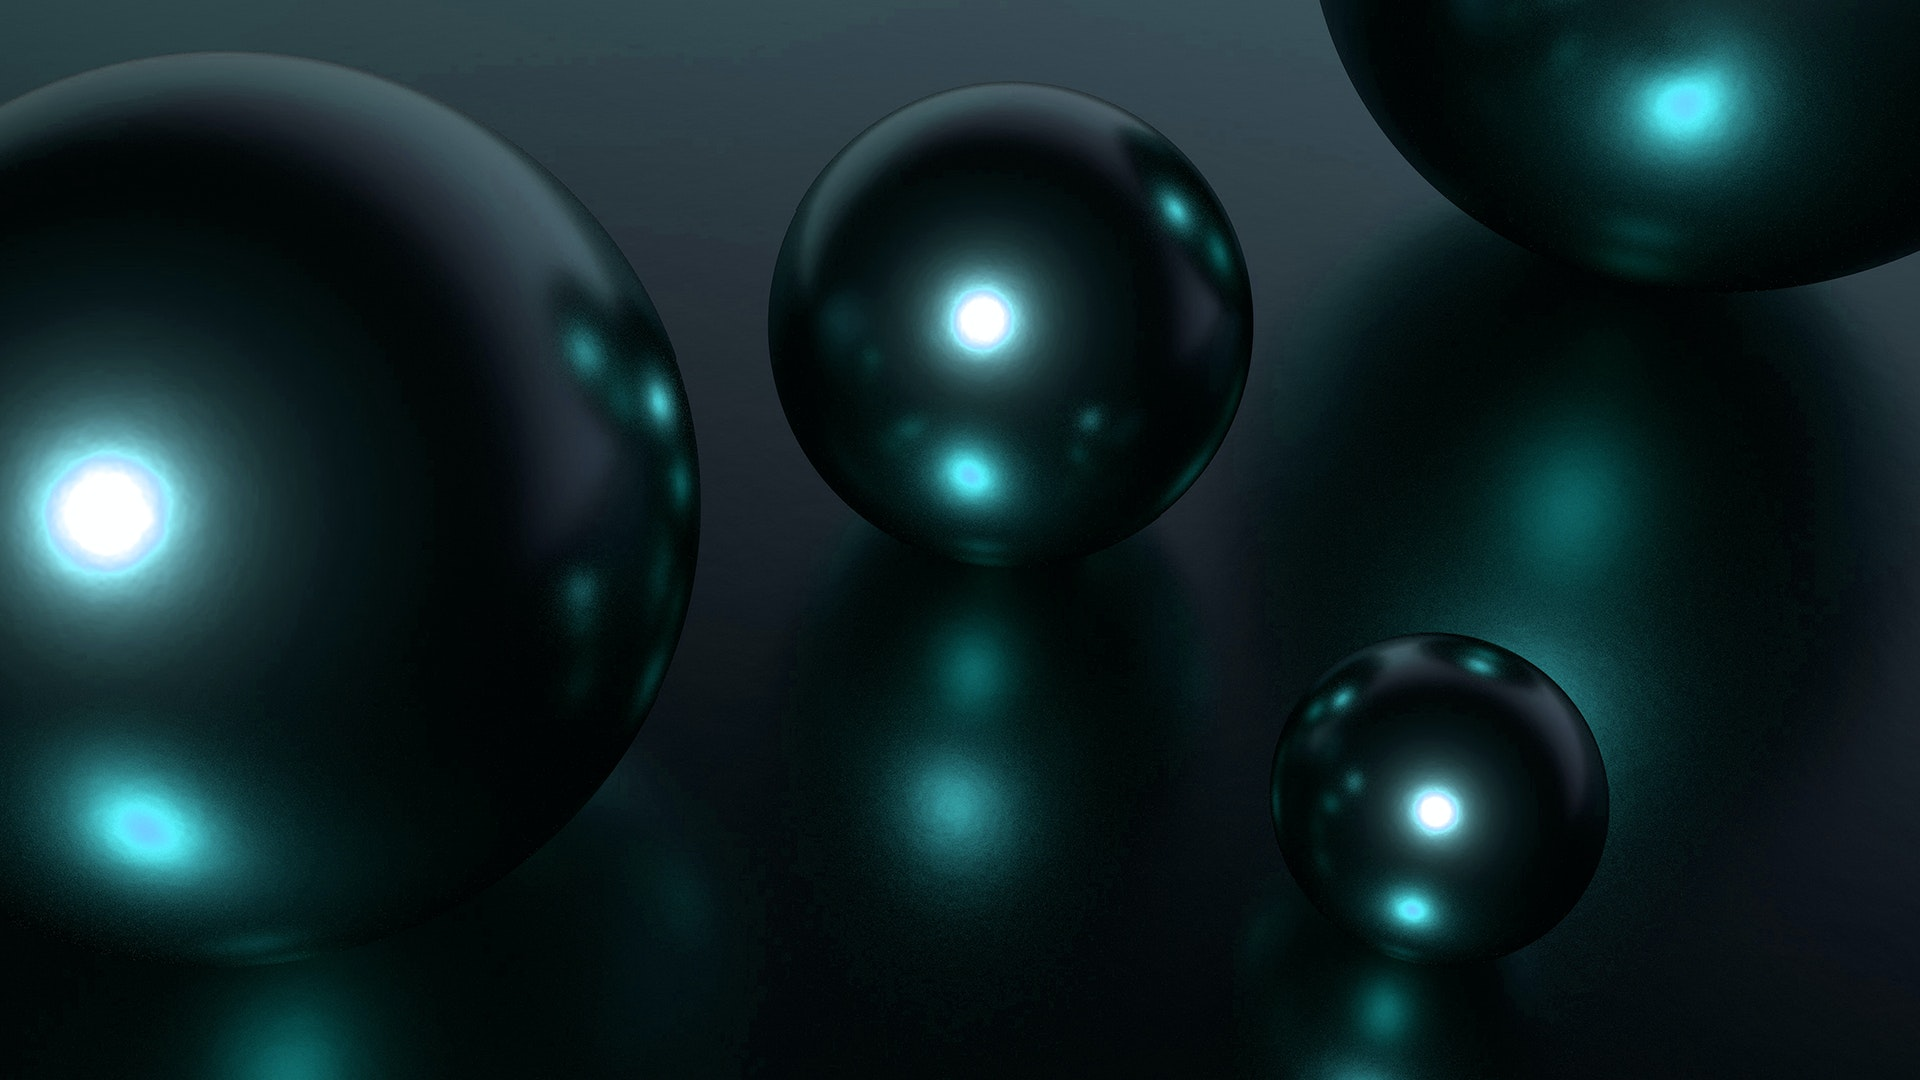 Free Stock Photo Of 1920x1080 Abstract Wallpaper Spheres